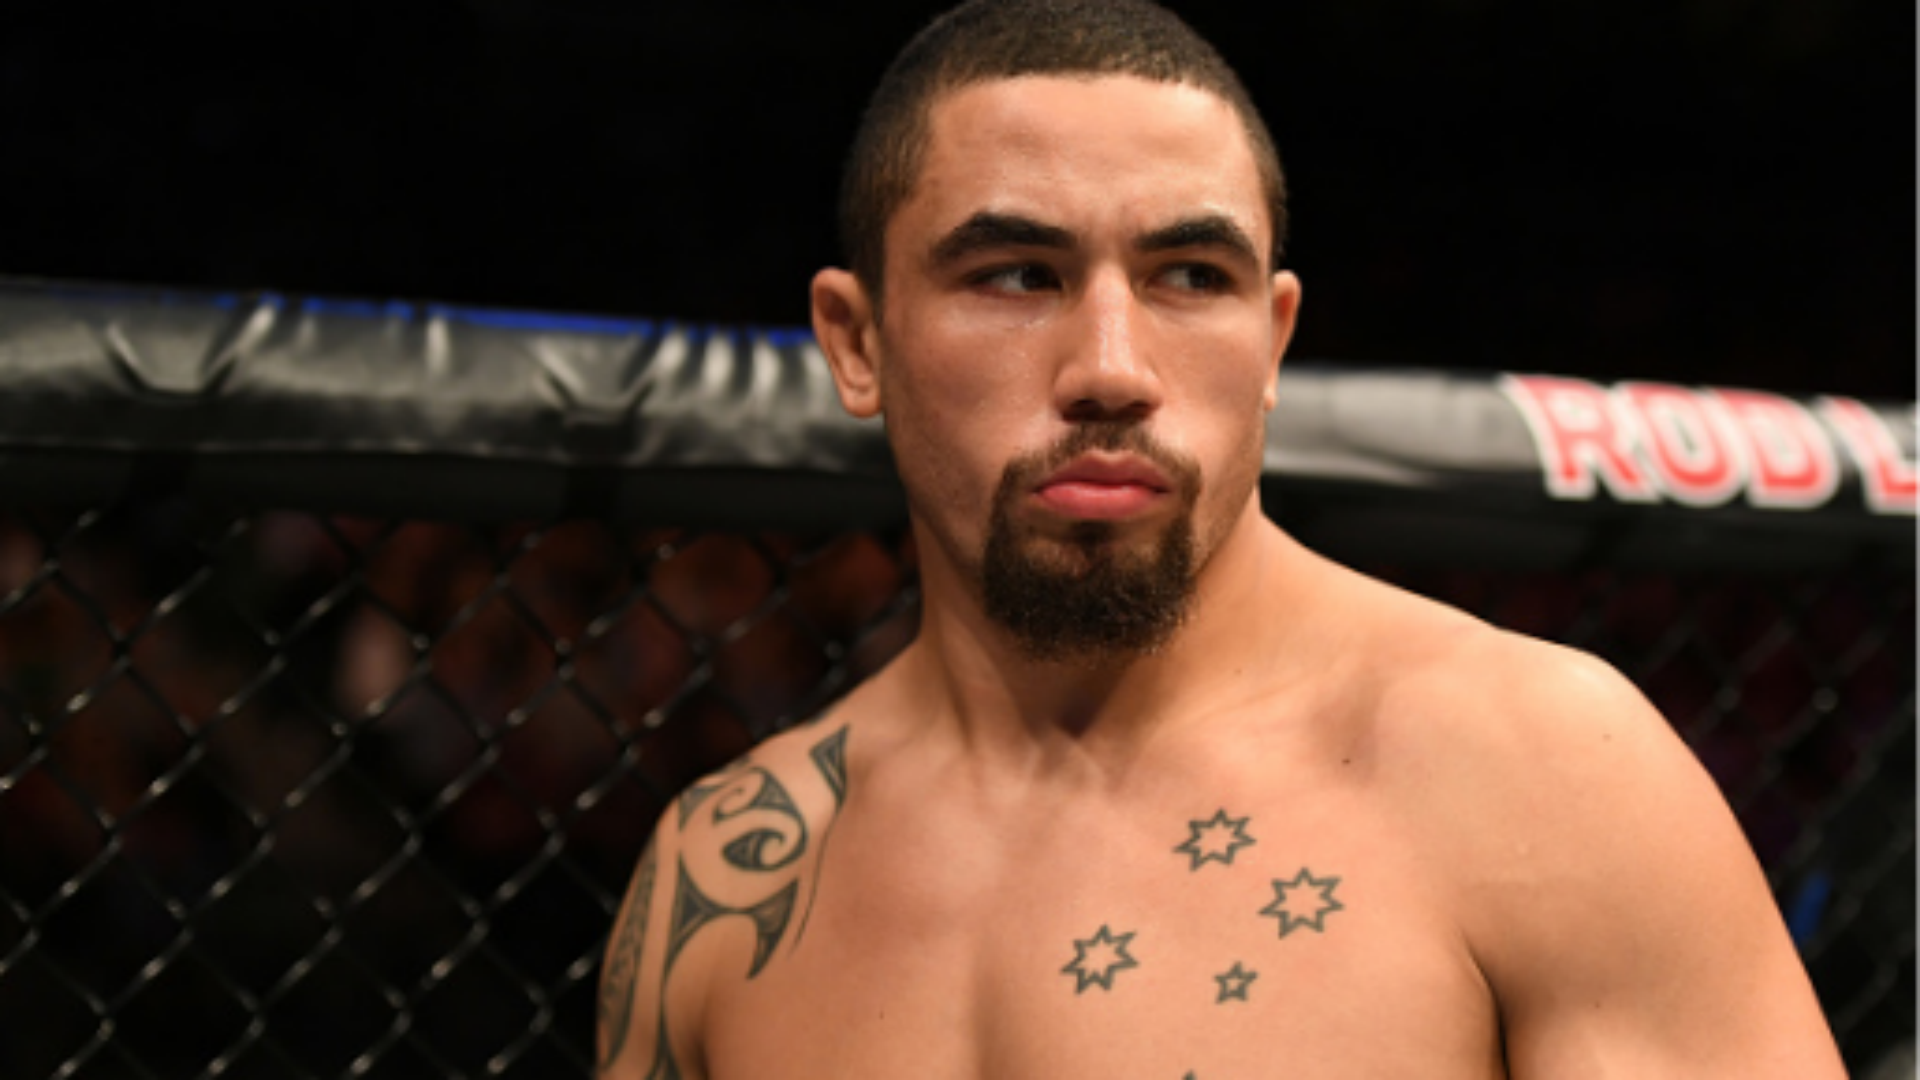 Robert Whittaker To Face Jacare Souza Mma Sporting News